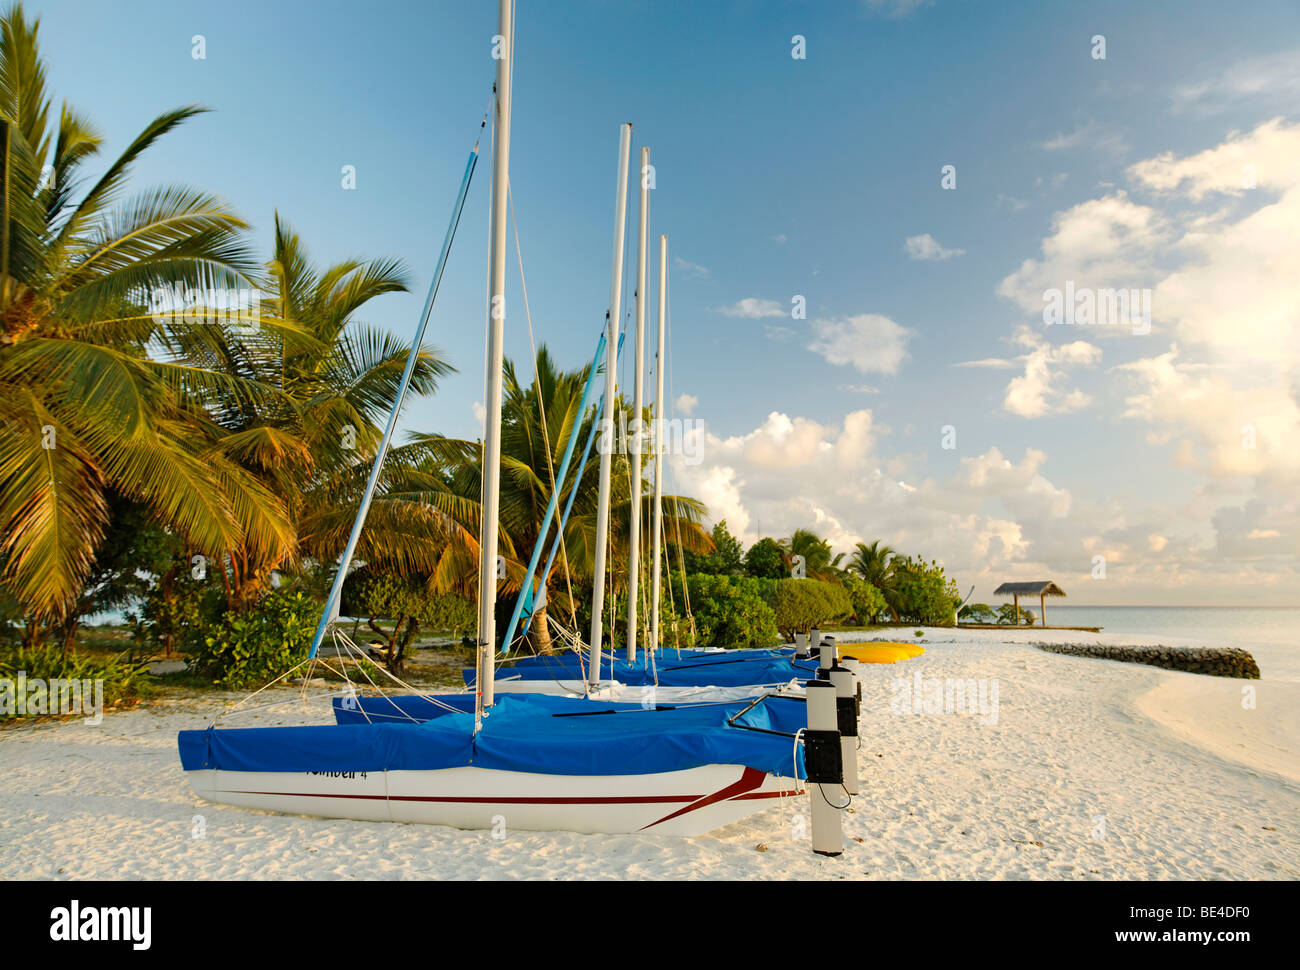 Hobby Car, catamarans, sail boats, side by side, on the beach, palm trees, Maldive island, South Male Atoll, Maldives, Stock Photo